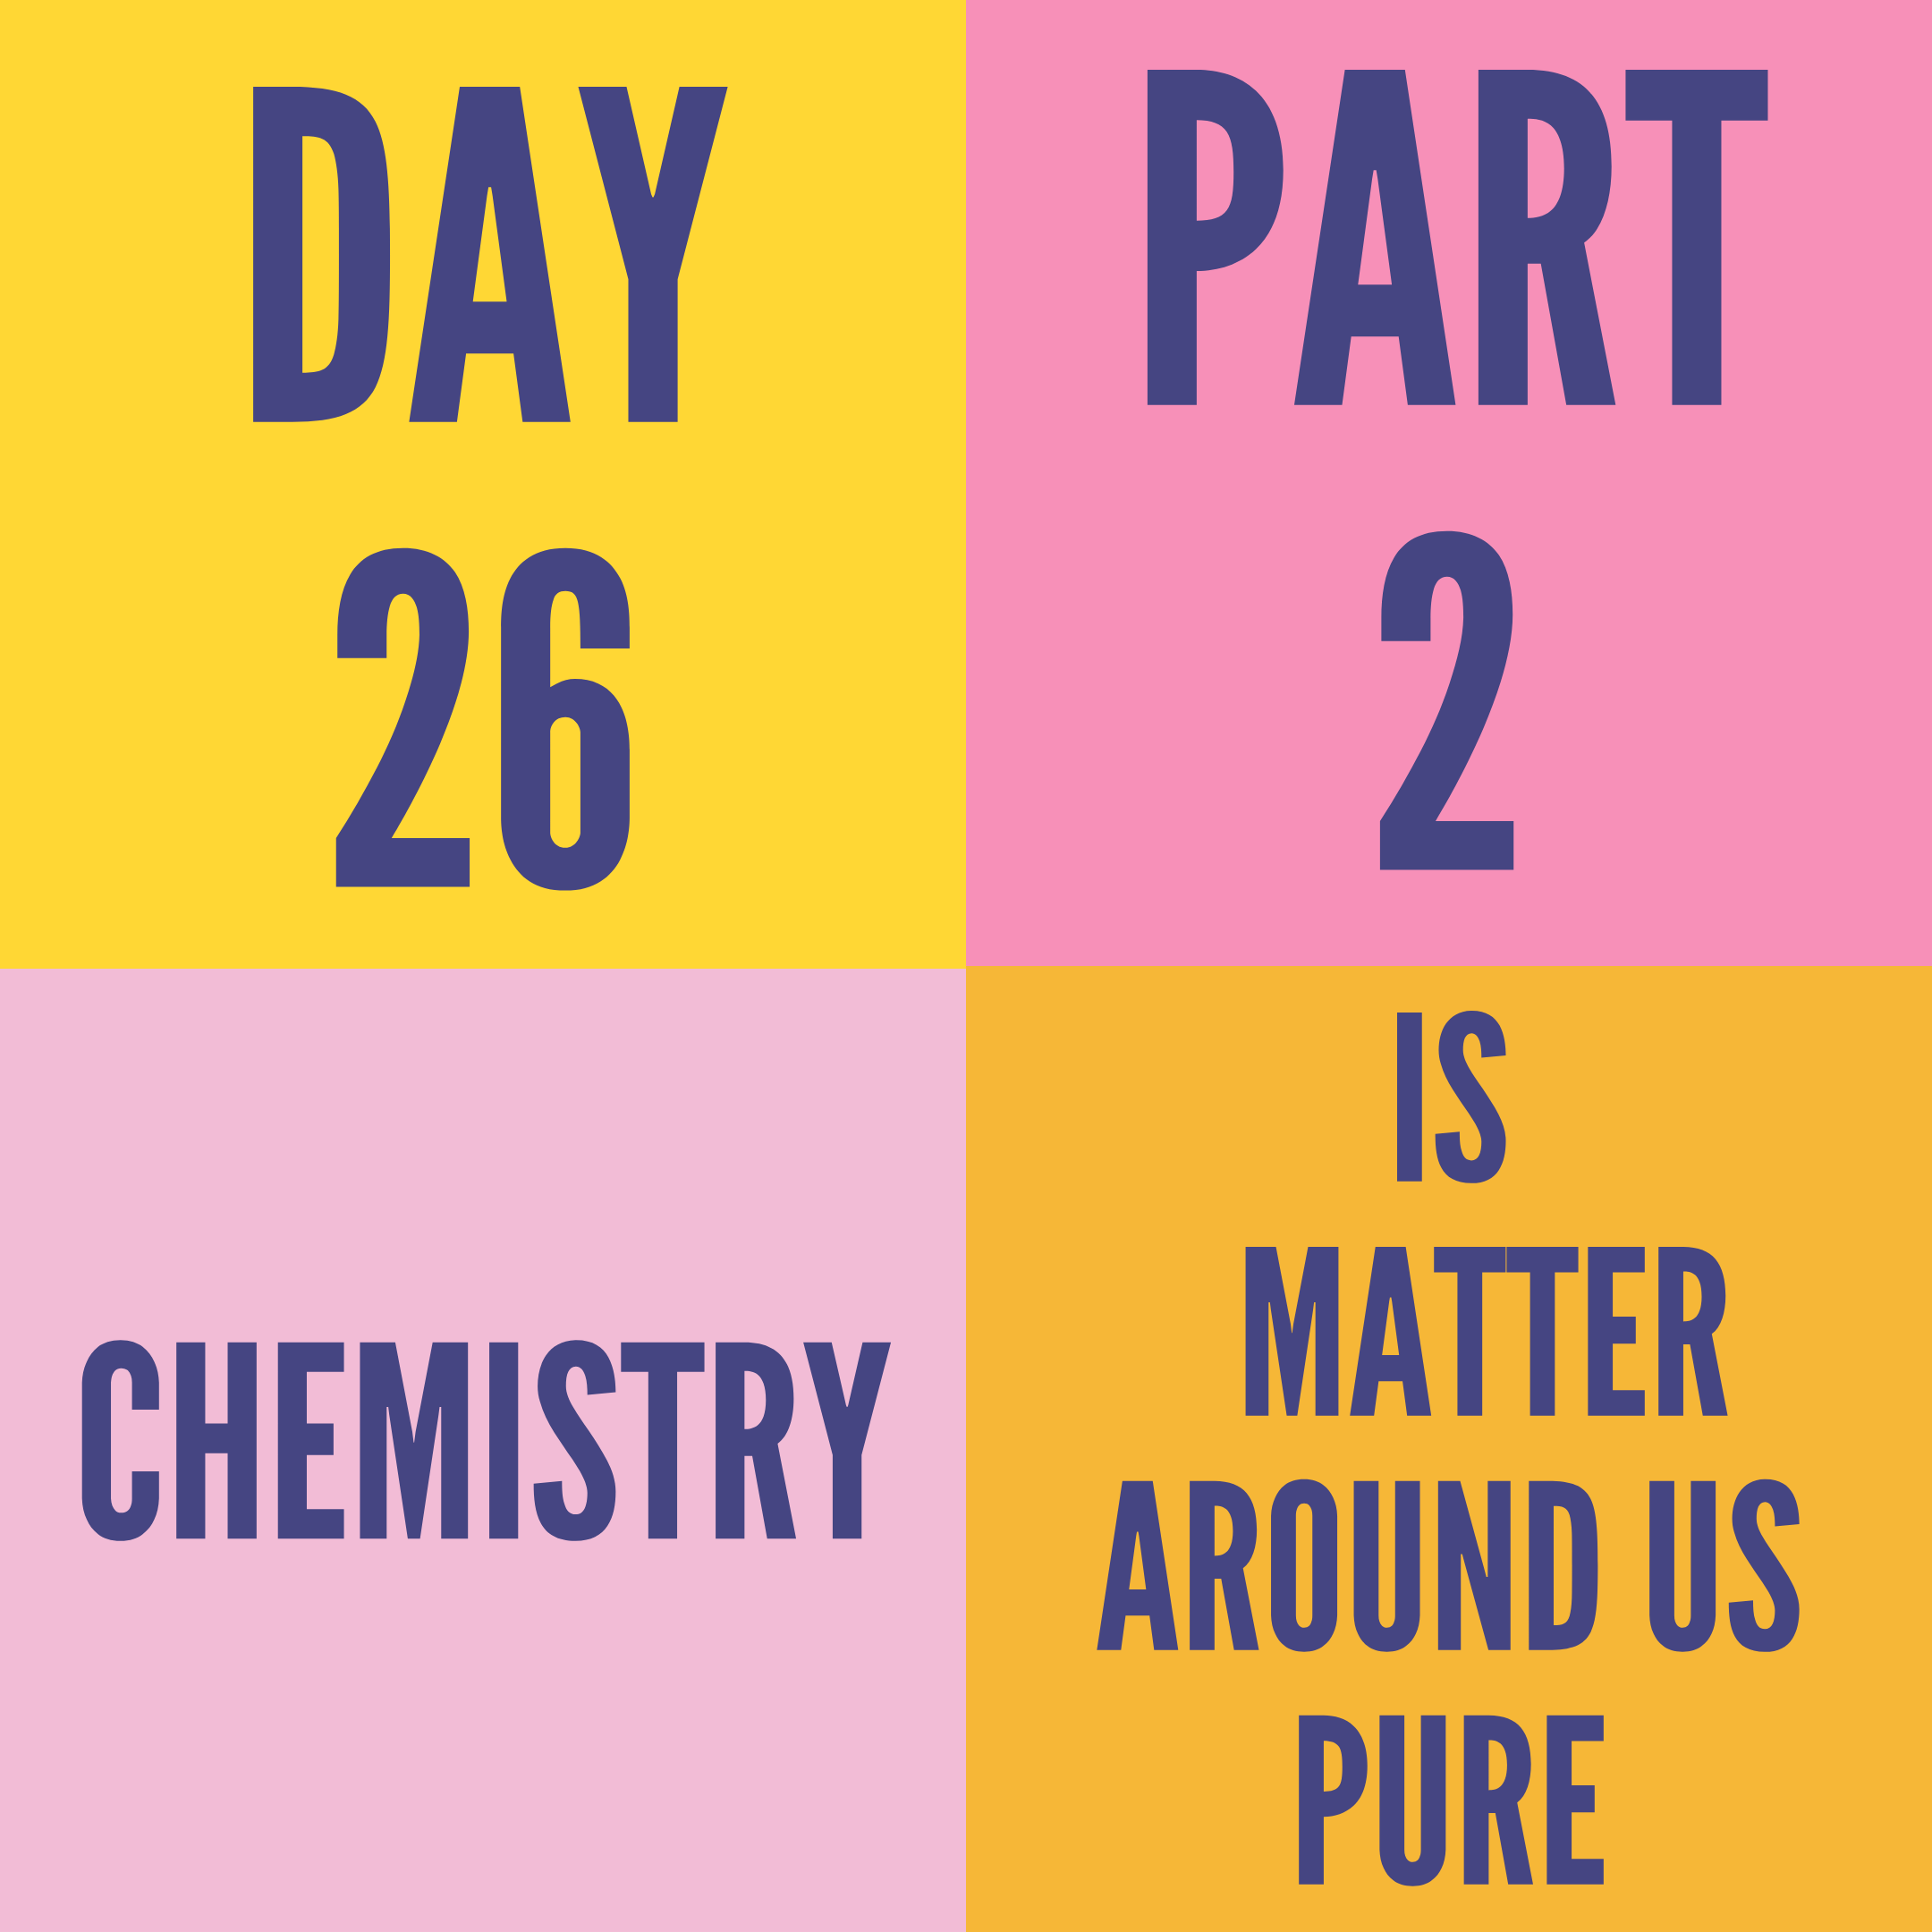 DAY-26 PART-2 IS MATTER AROUND US PURE